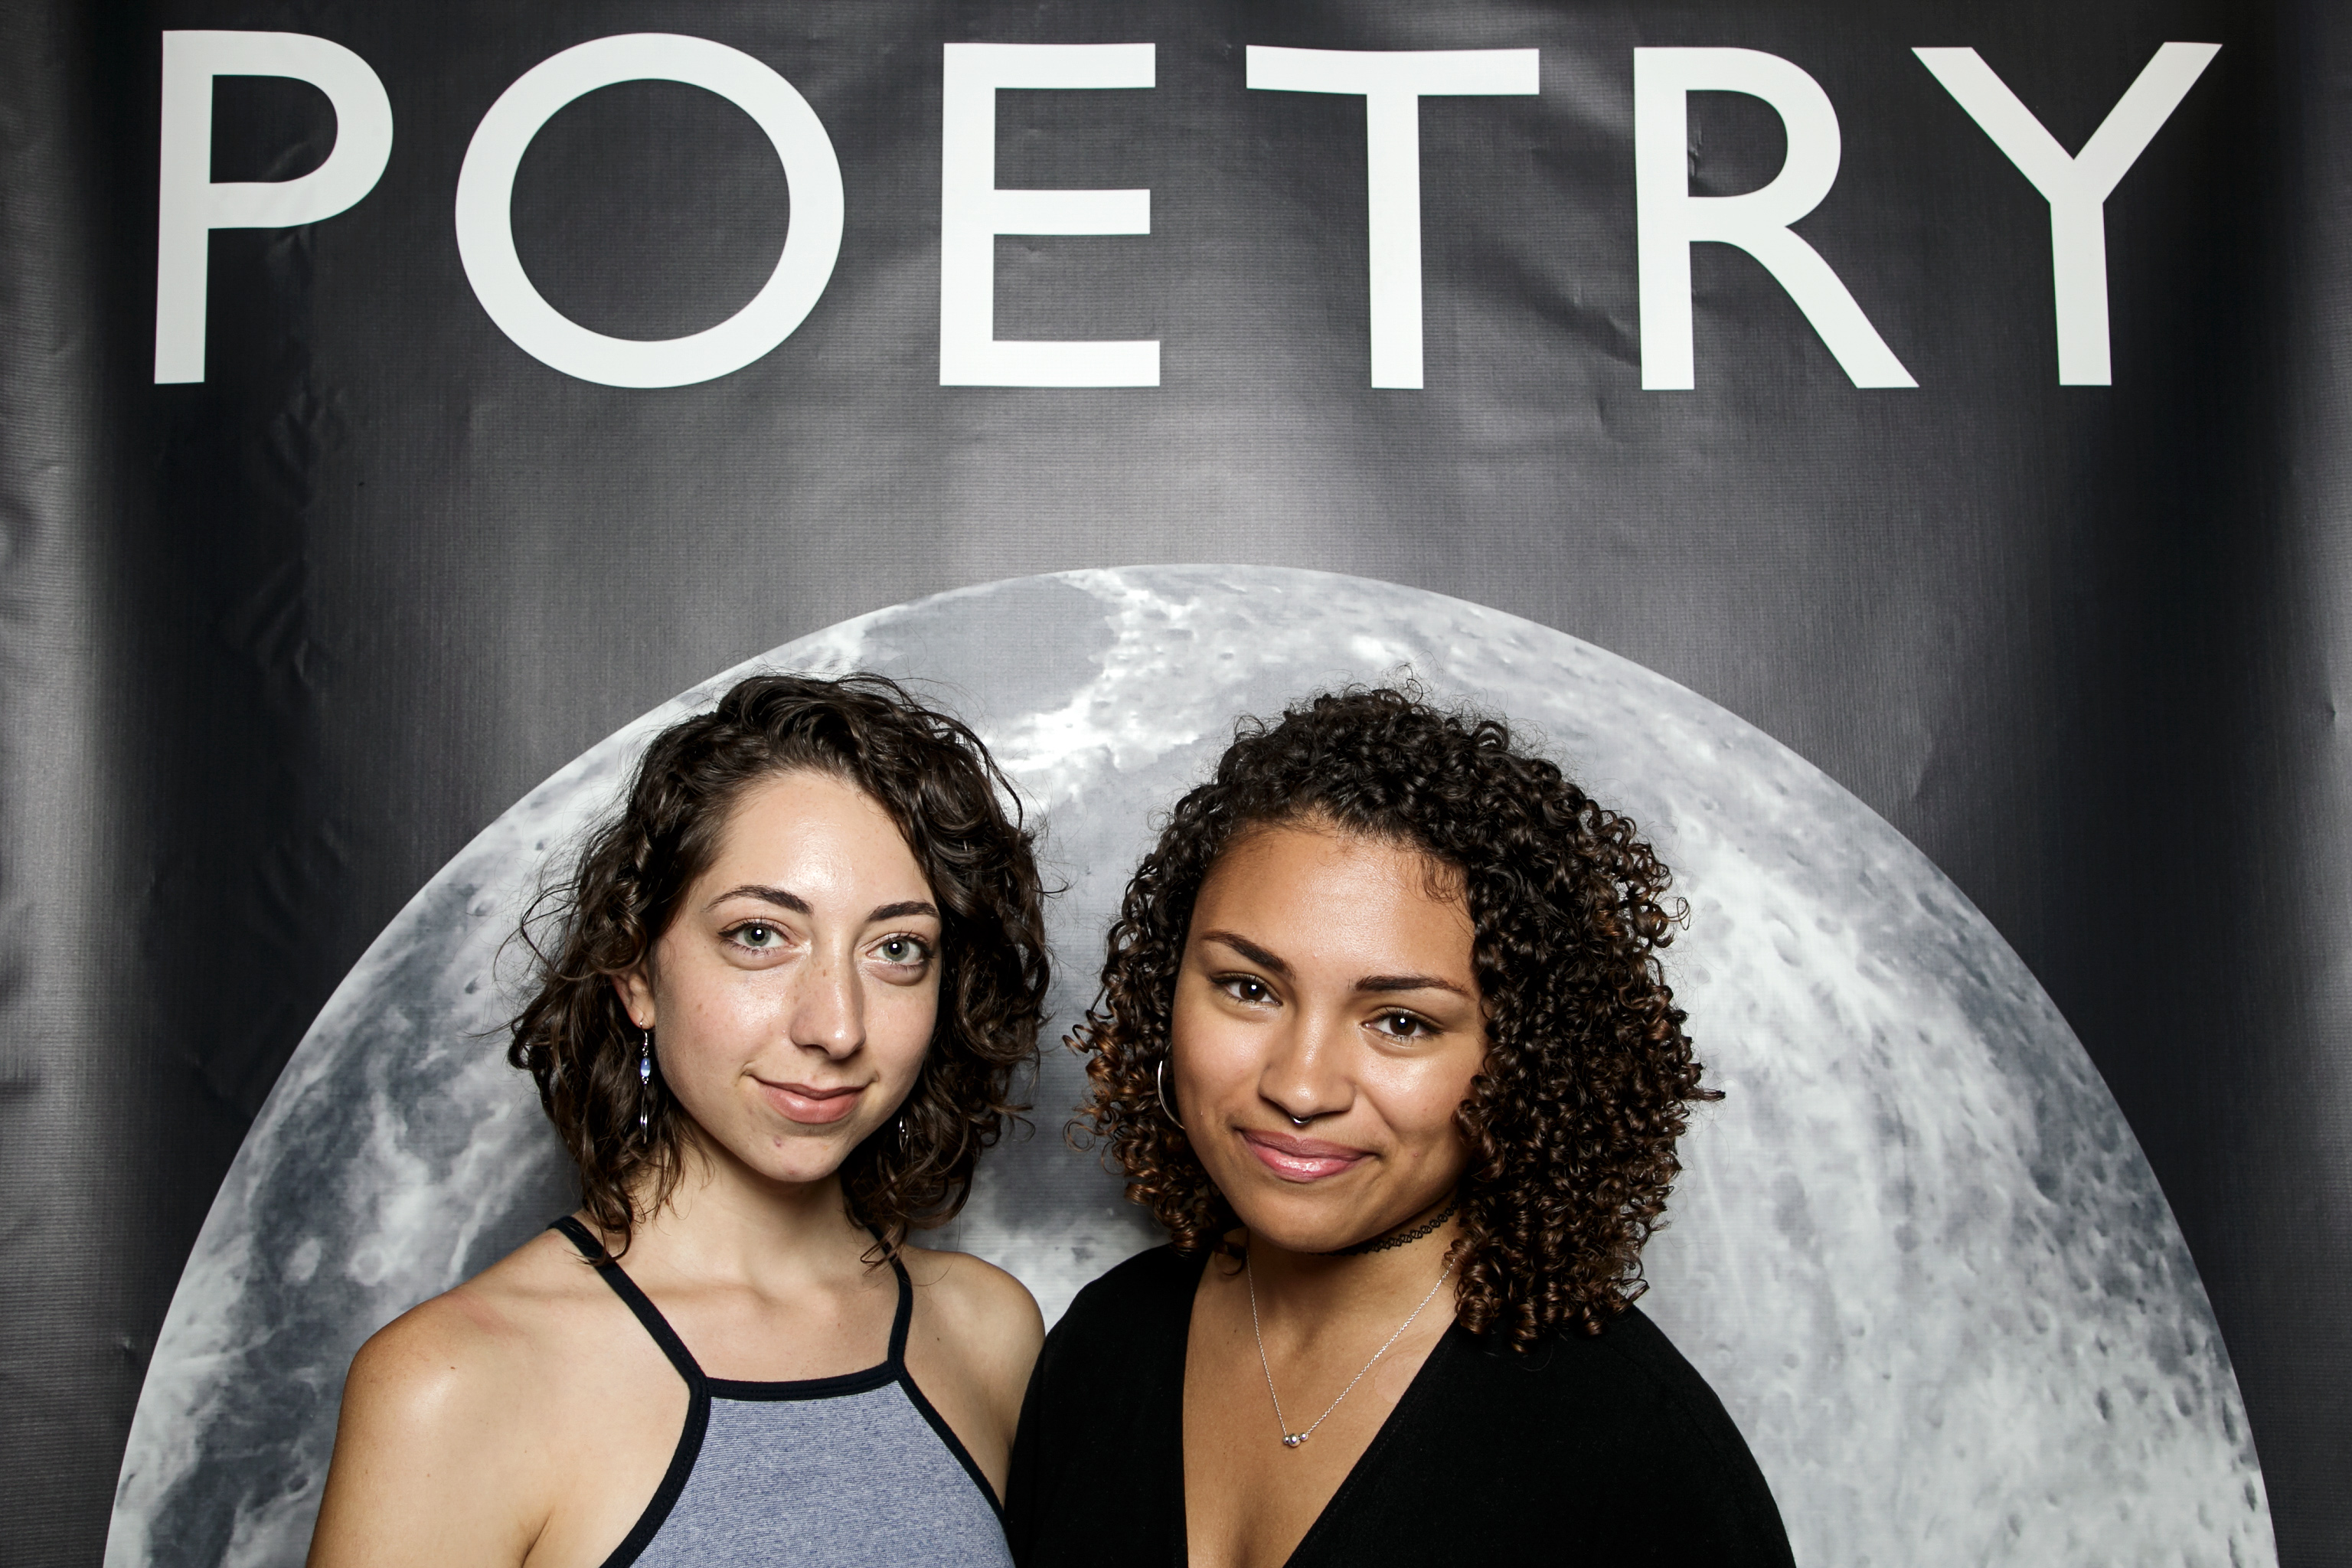 portrait booth photos from poetry foundation's summertime party, july 2016